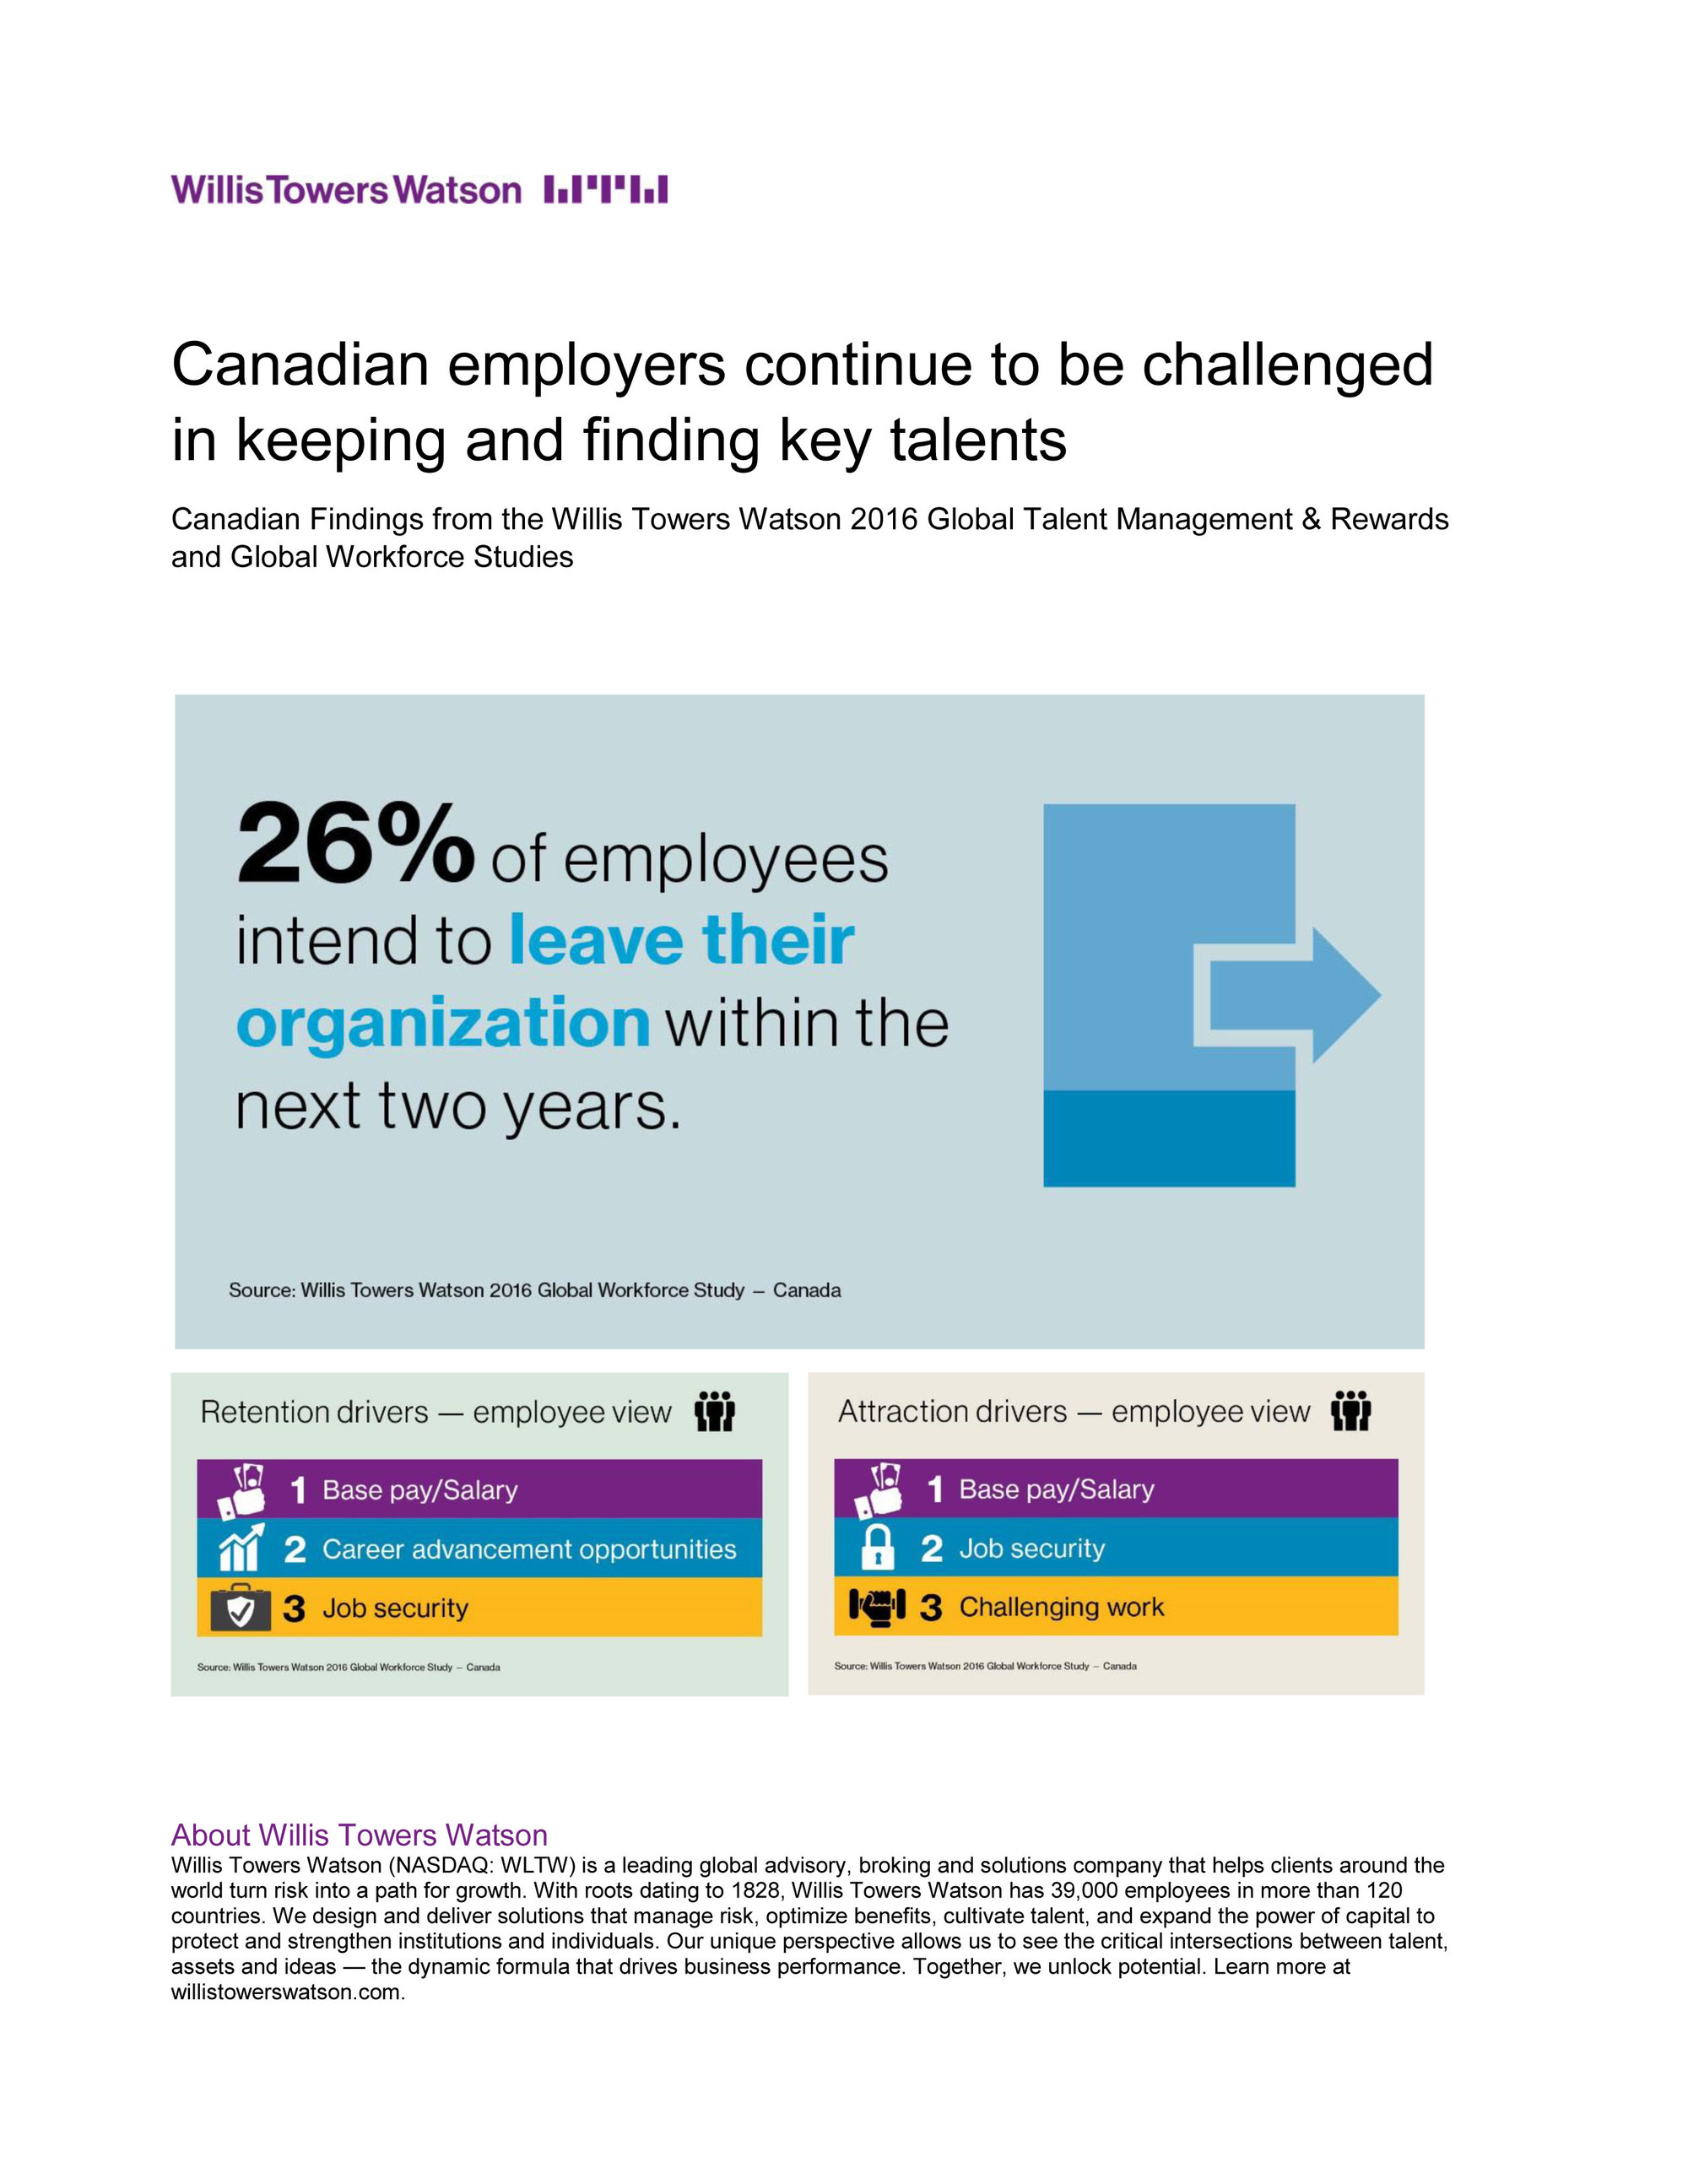 Canadian employers continue to be challenged in keeping and finding key talent (CNW Group/Willis Towers Watson)